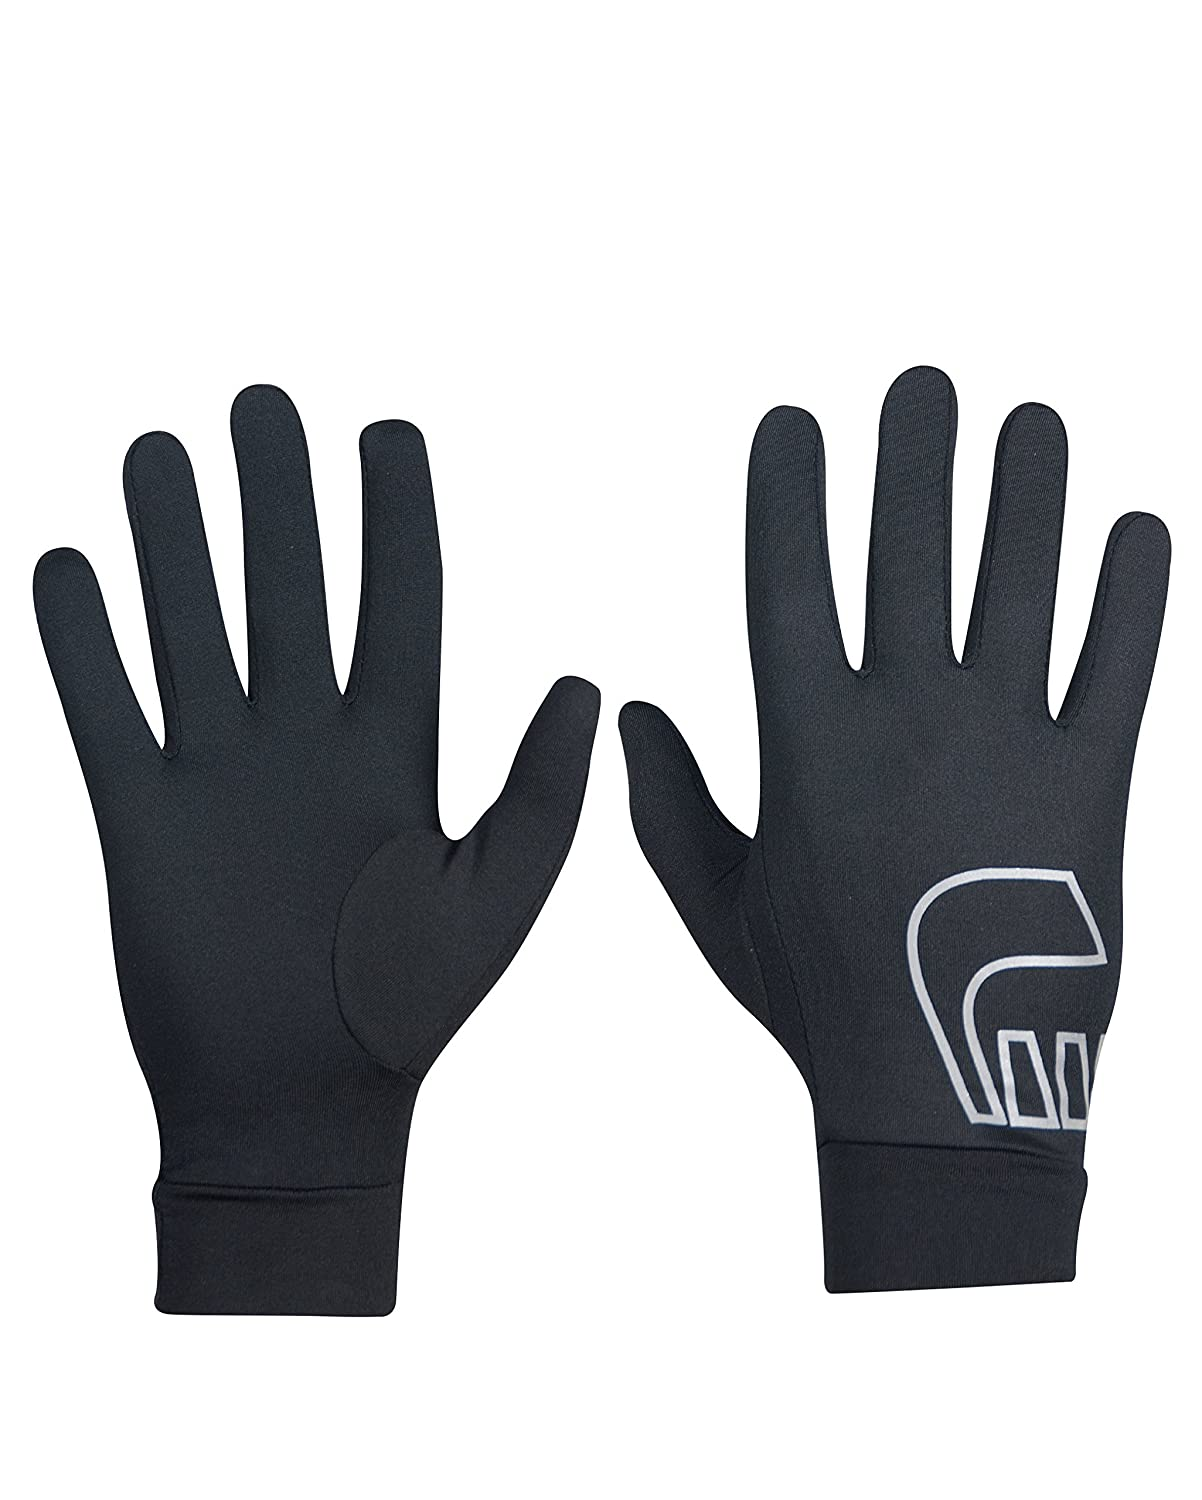 NewLine Base Gloves - Guantes, Color Negro, Talla S 90876